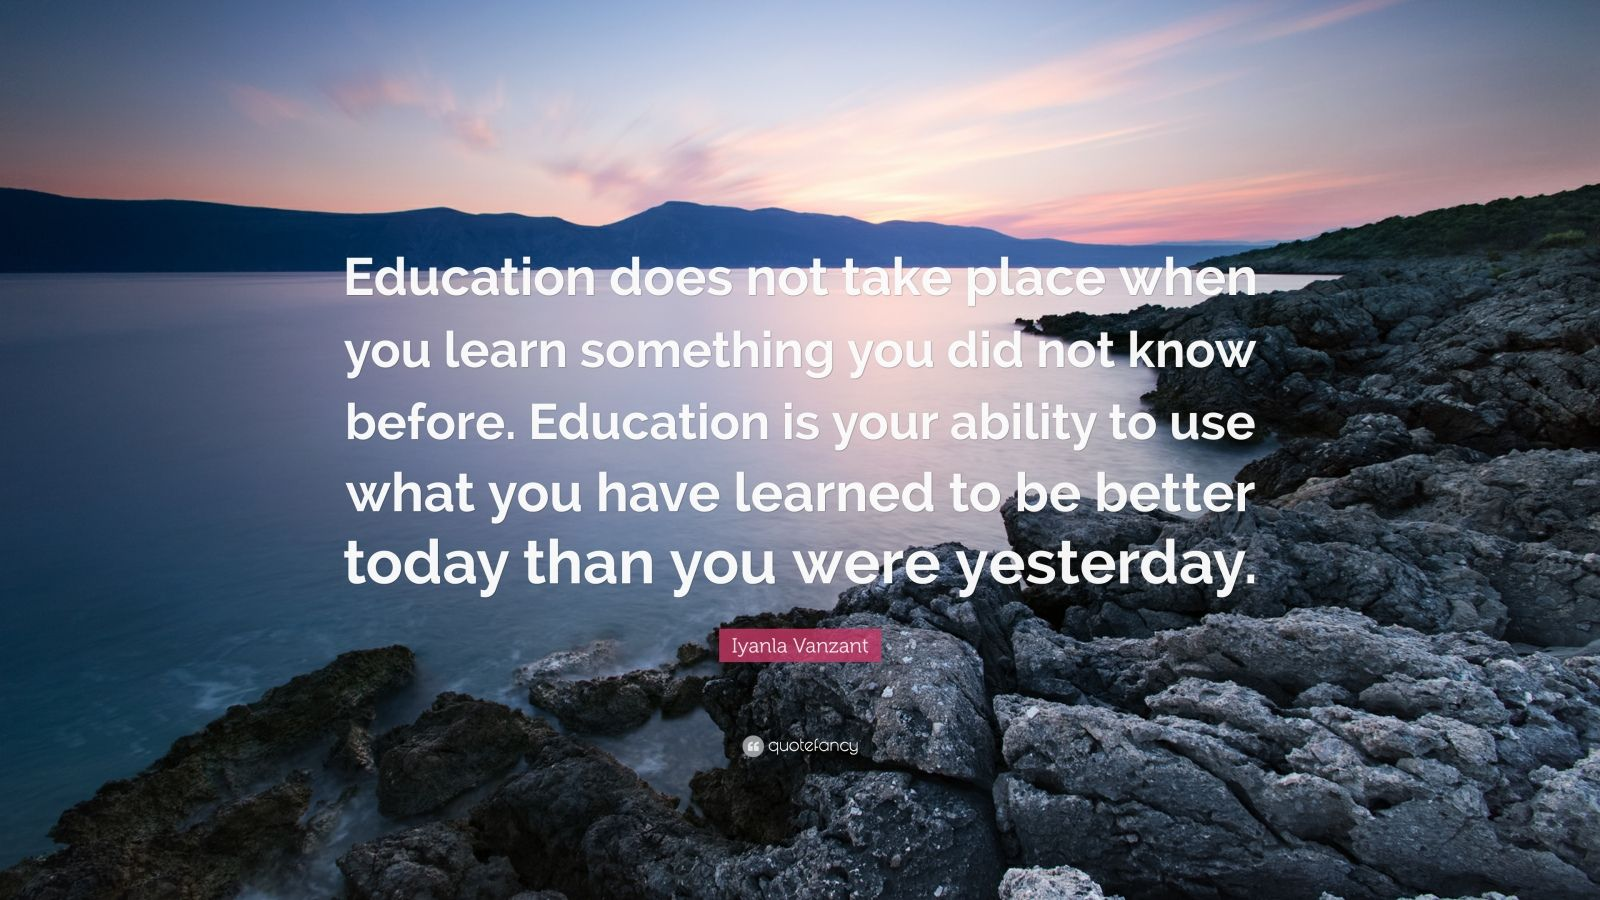 """Iyanla Vanzant Quote: """"Education does not take place when you learn something you did not know before. Education is your ability to use what you have learned to be better today than you were yesterday."""""""